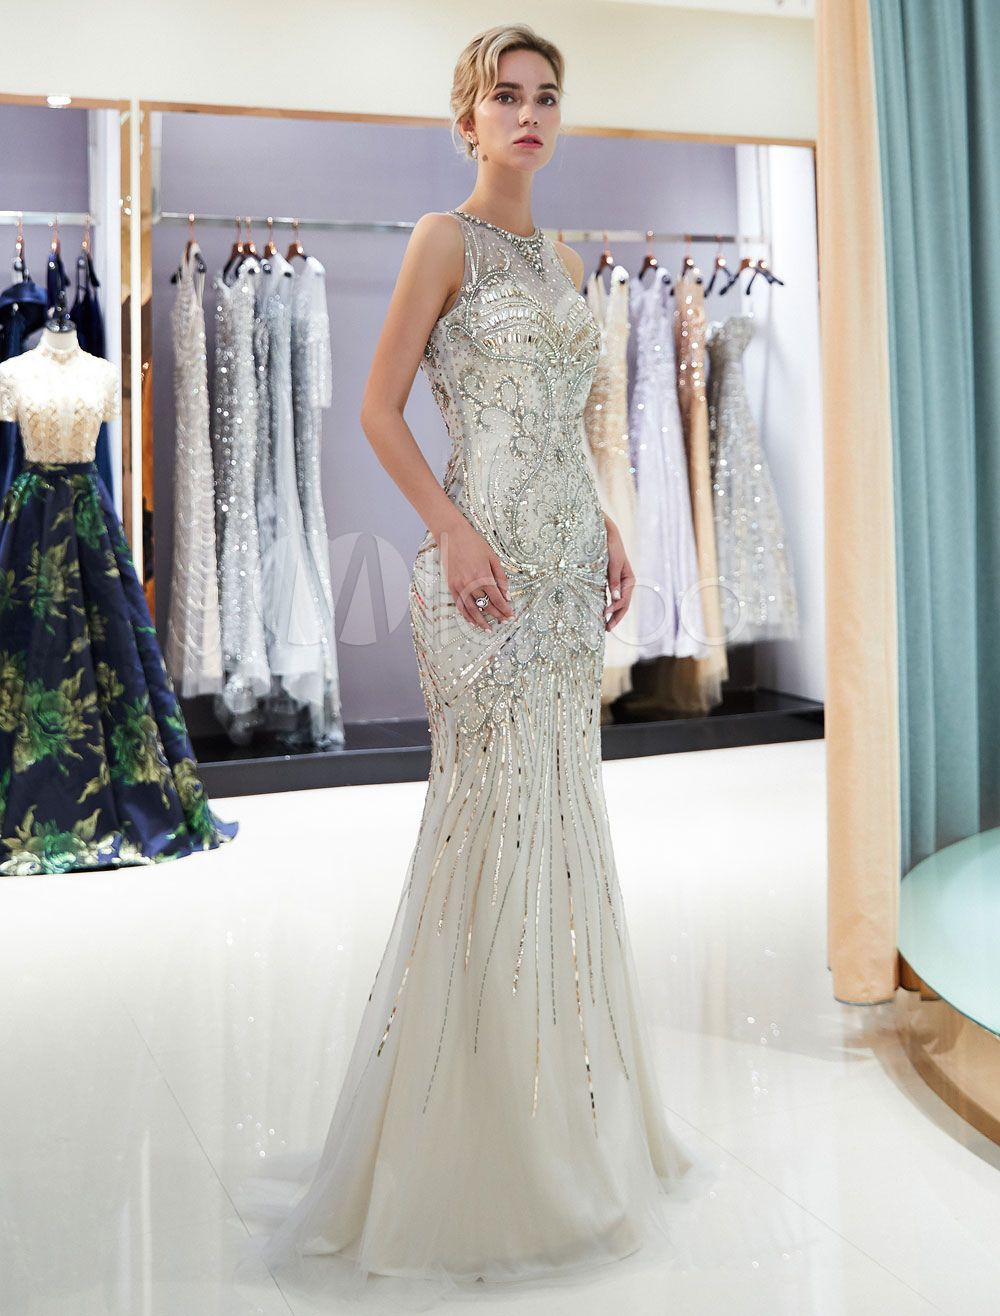 d15cf704d55 Mermaid Evening Dresses Light Gold Beaded Prom Dress Sleeveless Luxury  Formal Gowns With Train  Light